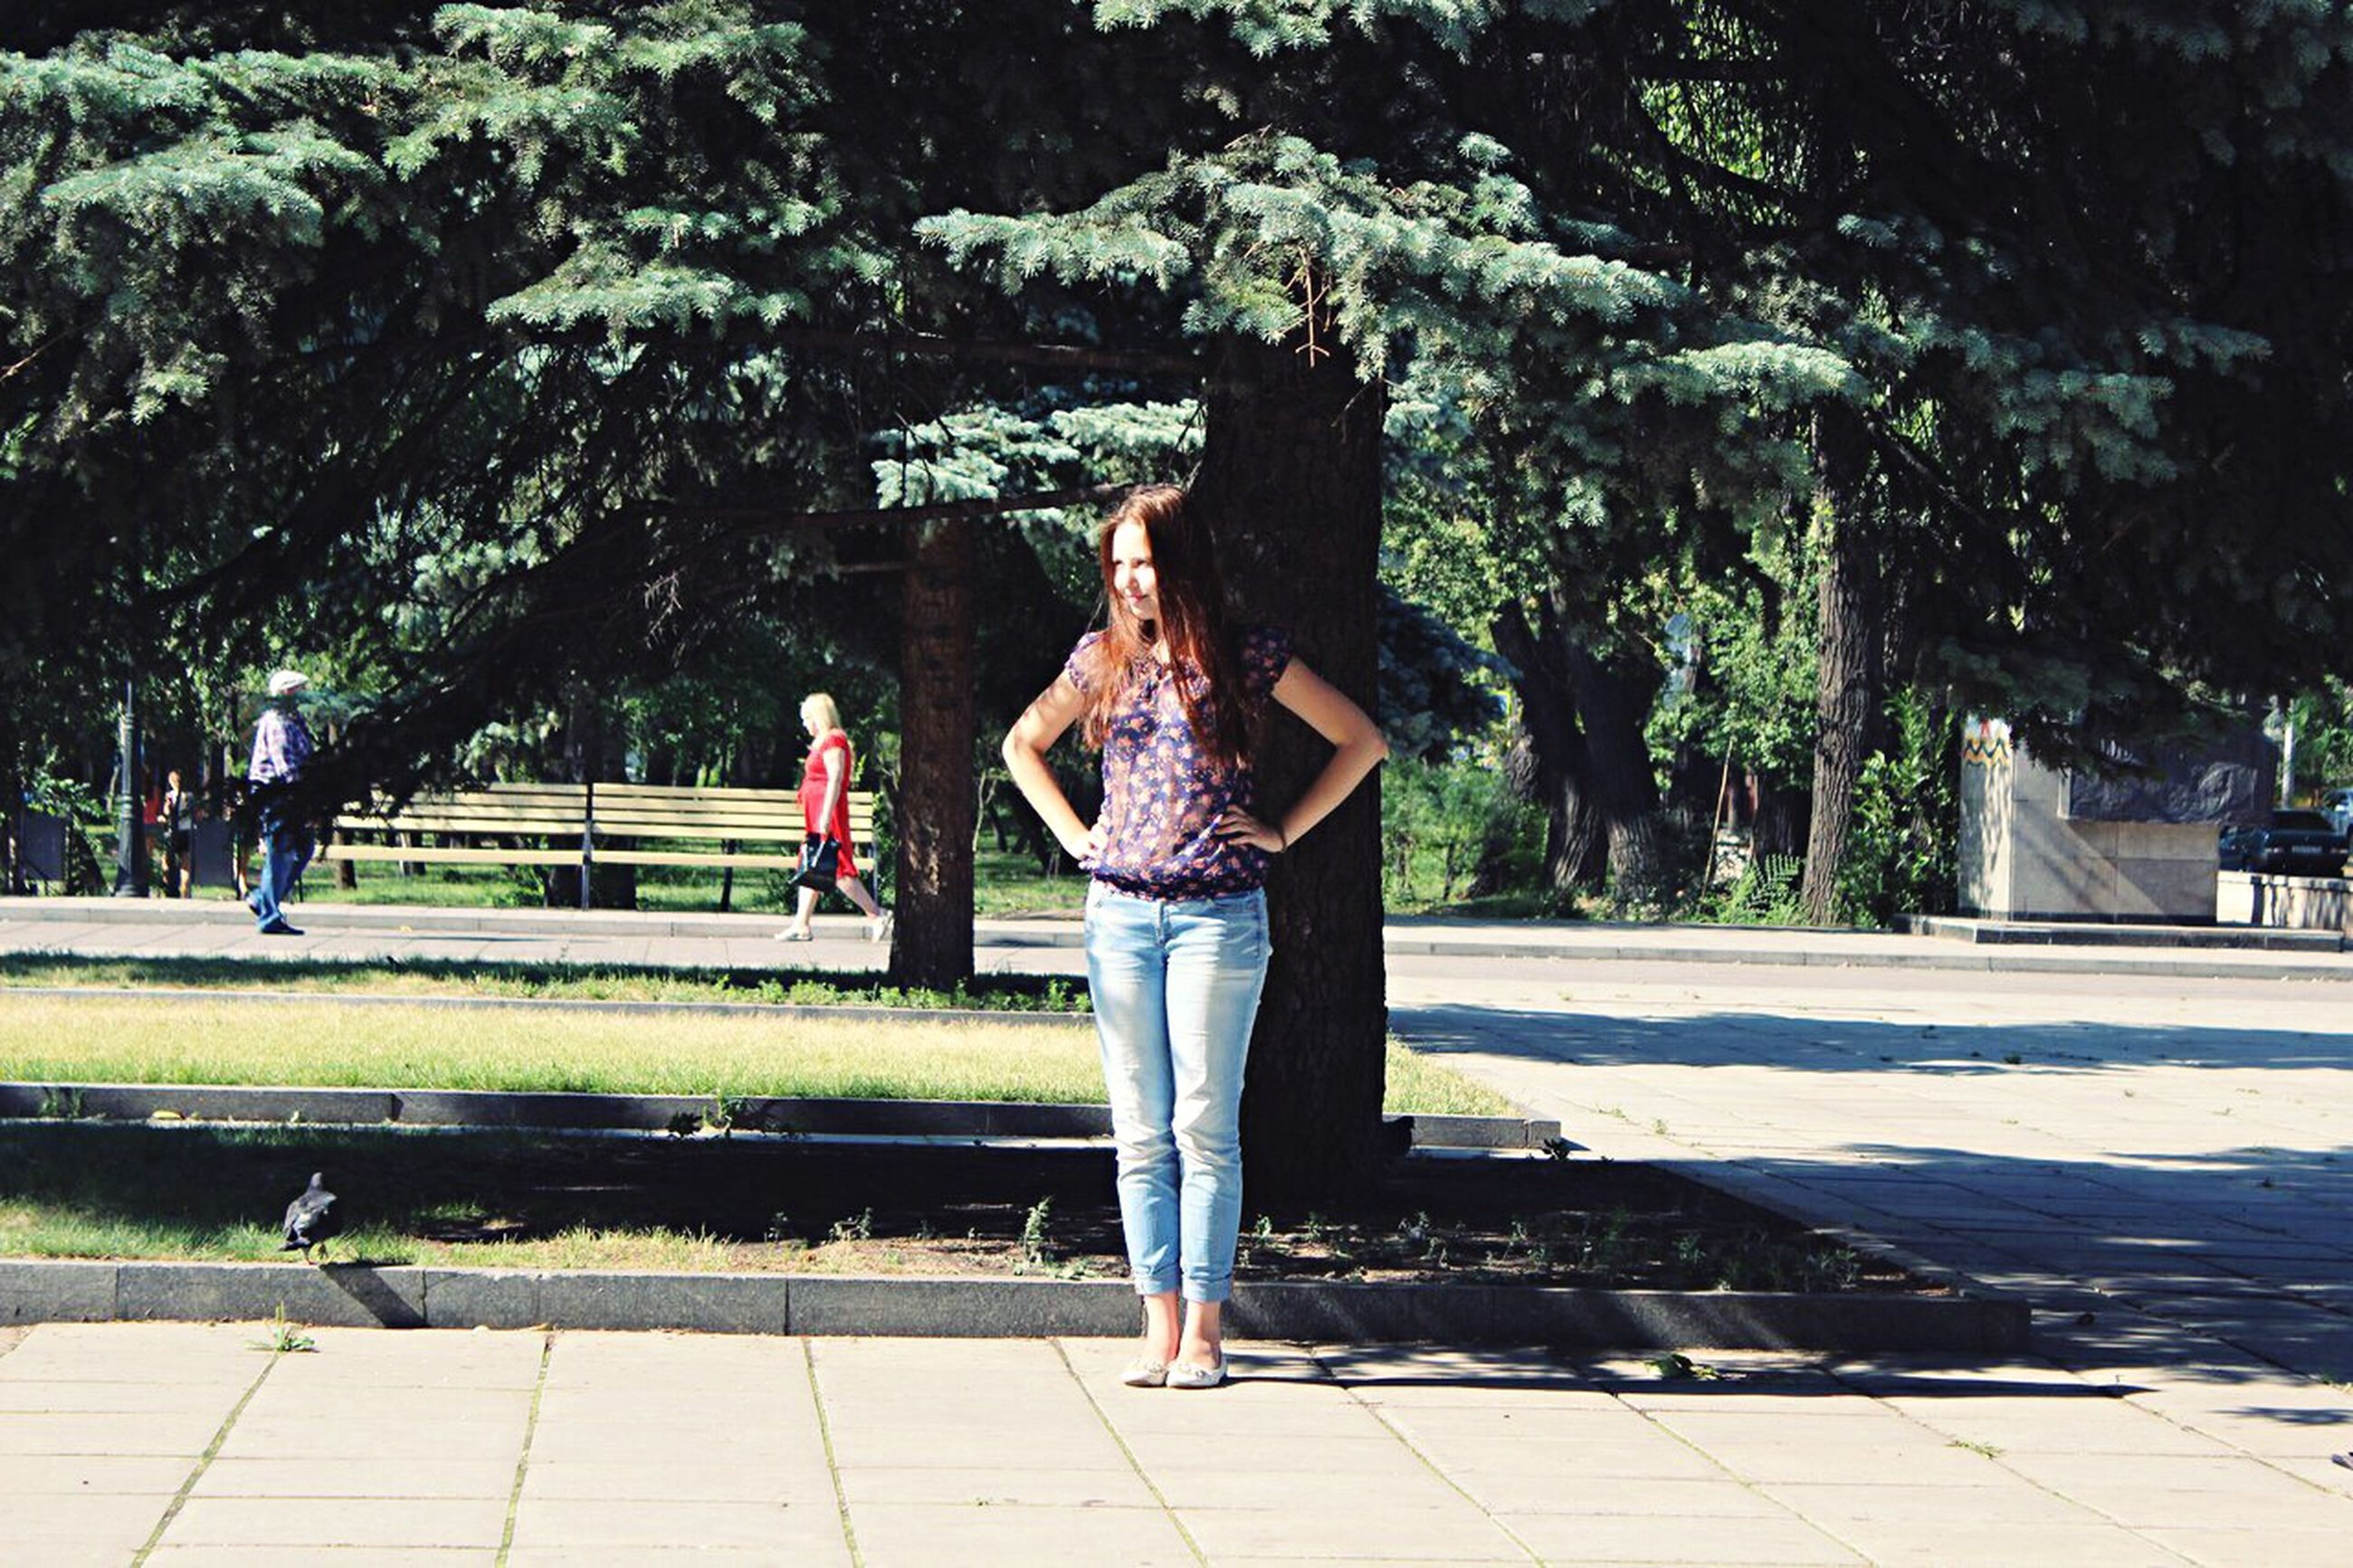 full length, tree, park - man made space, outdoors, casual clothing, young adult, one person, women, only women, young women, one woman only, people, nature, adults only, adult, day, one young woman only